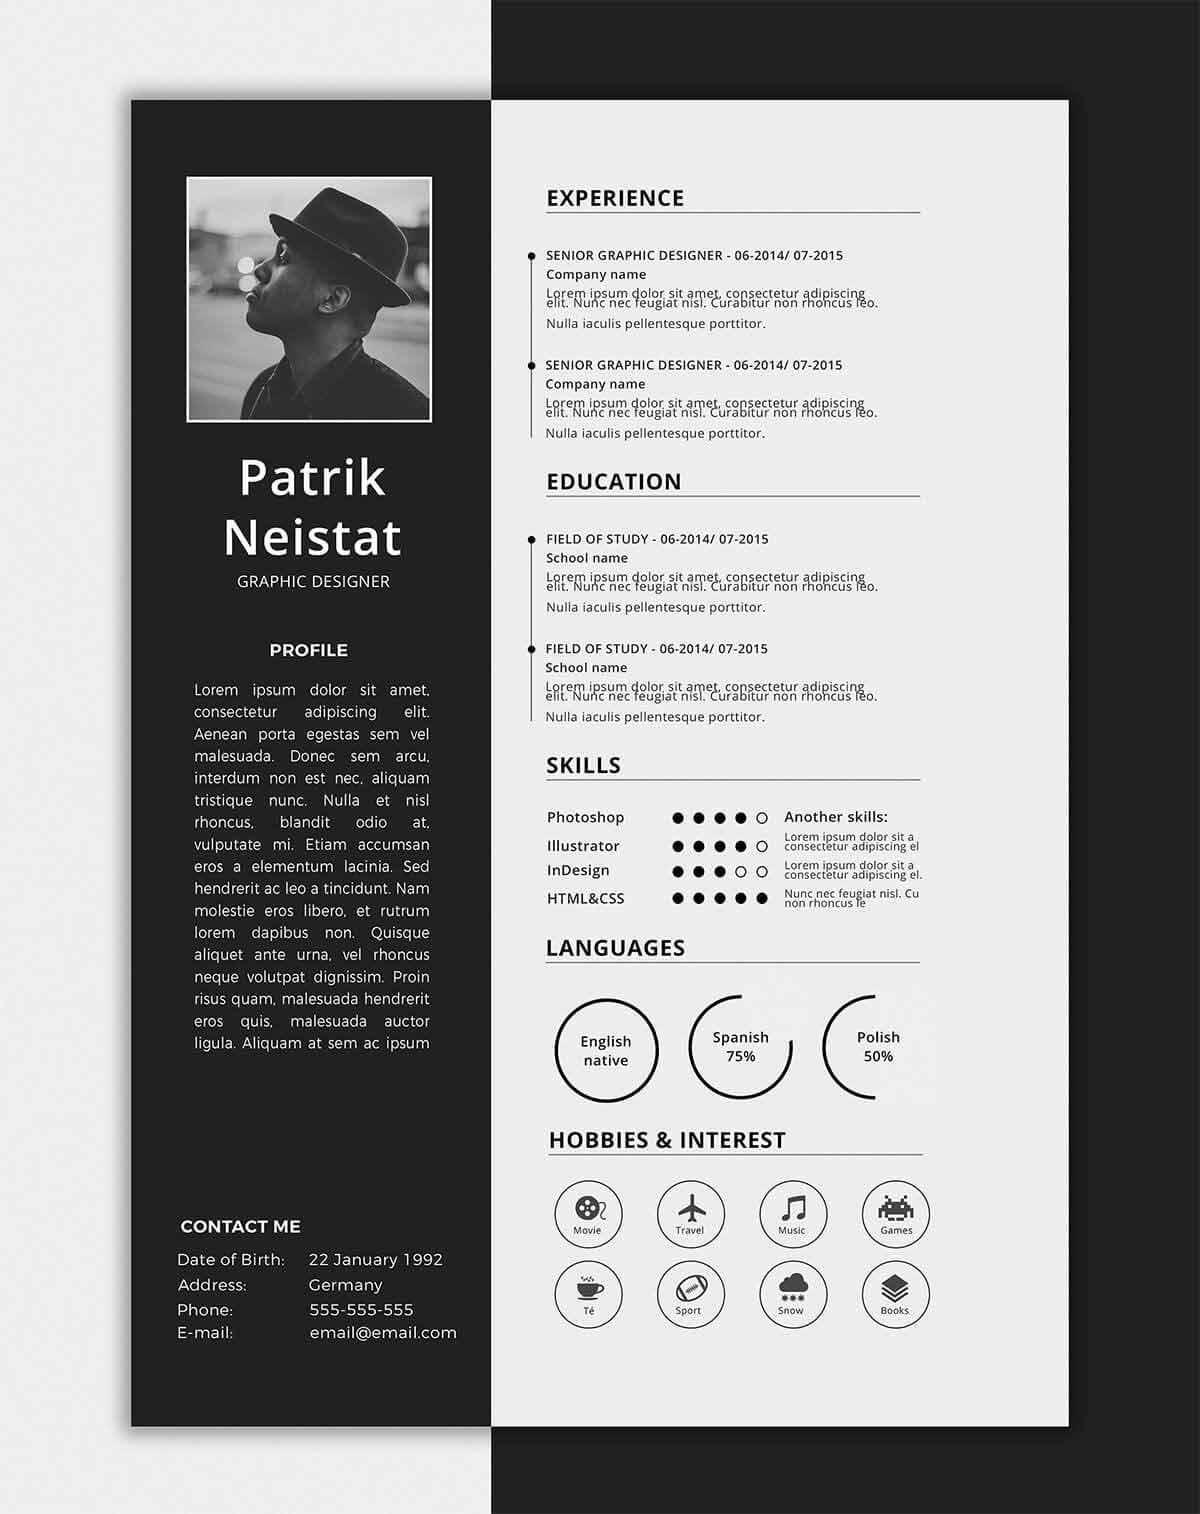 67 New Free 1 Page Resume Template with Pictures